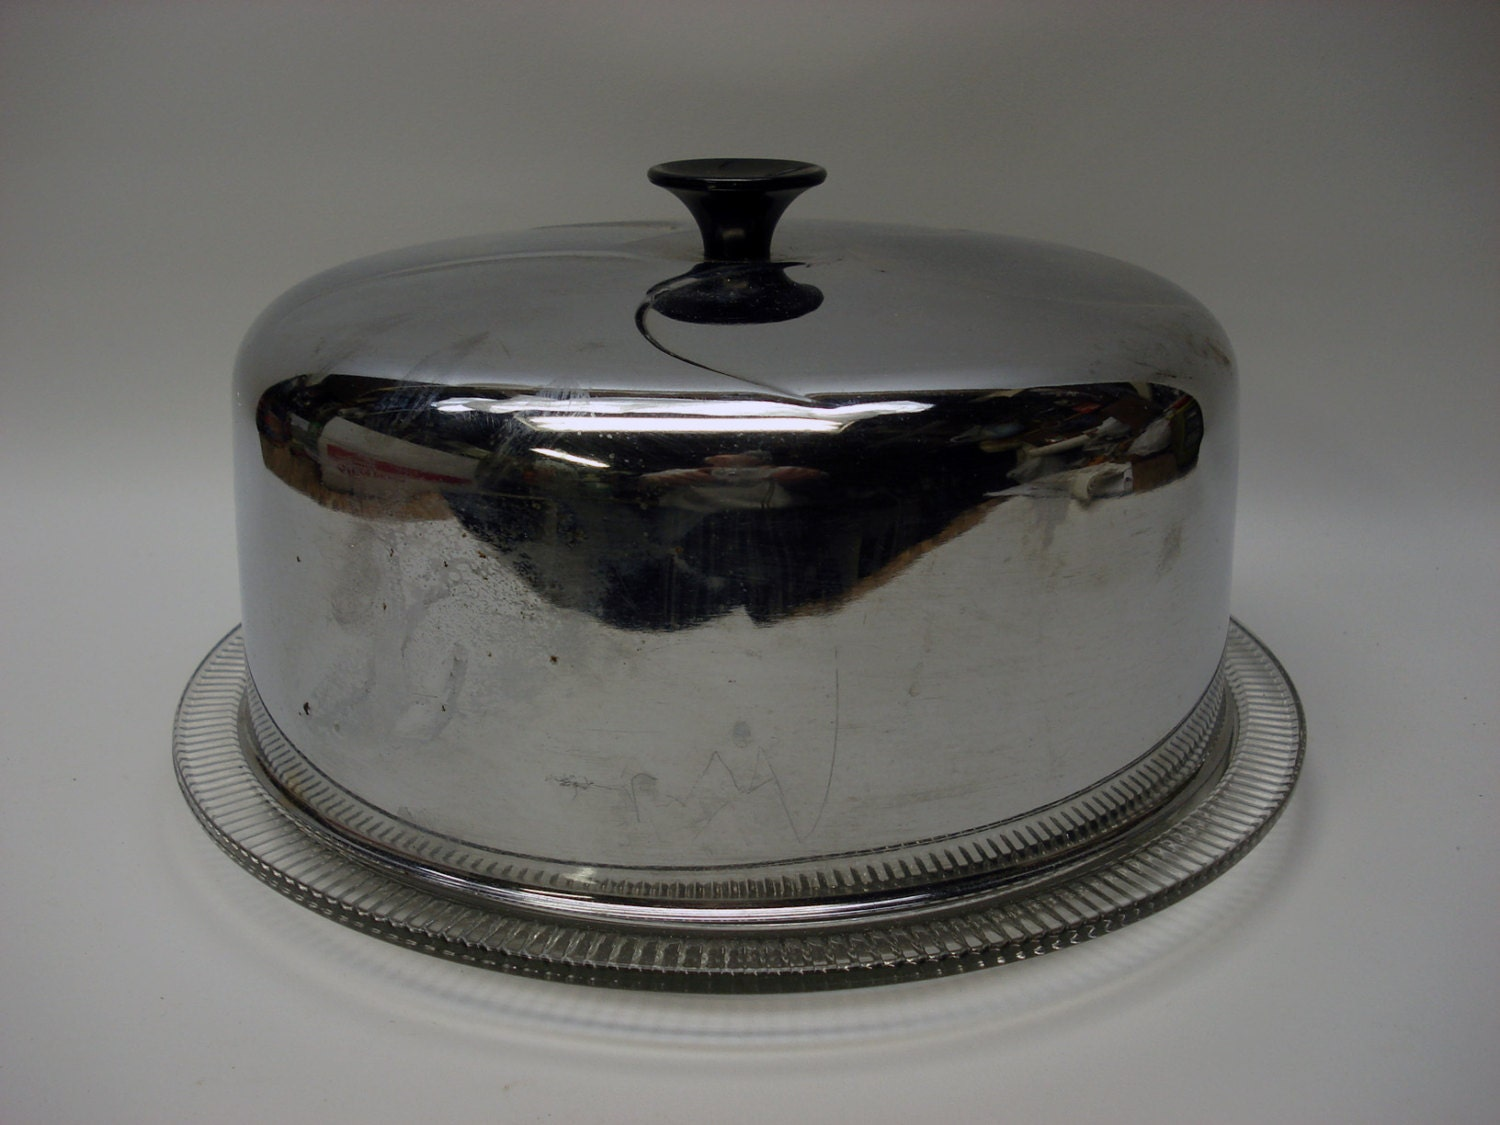 sale vintage glass cake plate with aluminum cover by elritmoretro. Black Bedroom Furniture Sets. Home Design Ideas